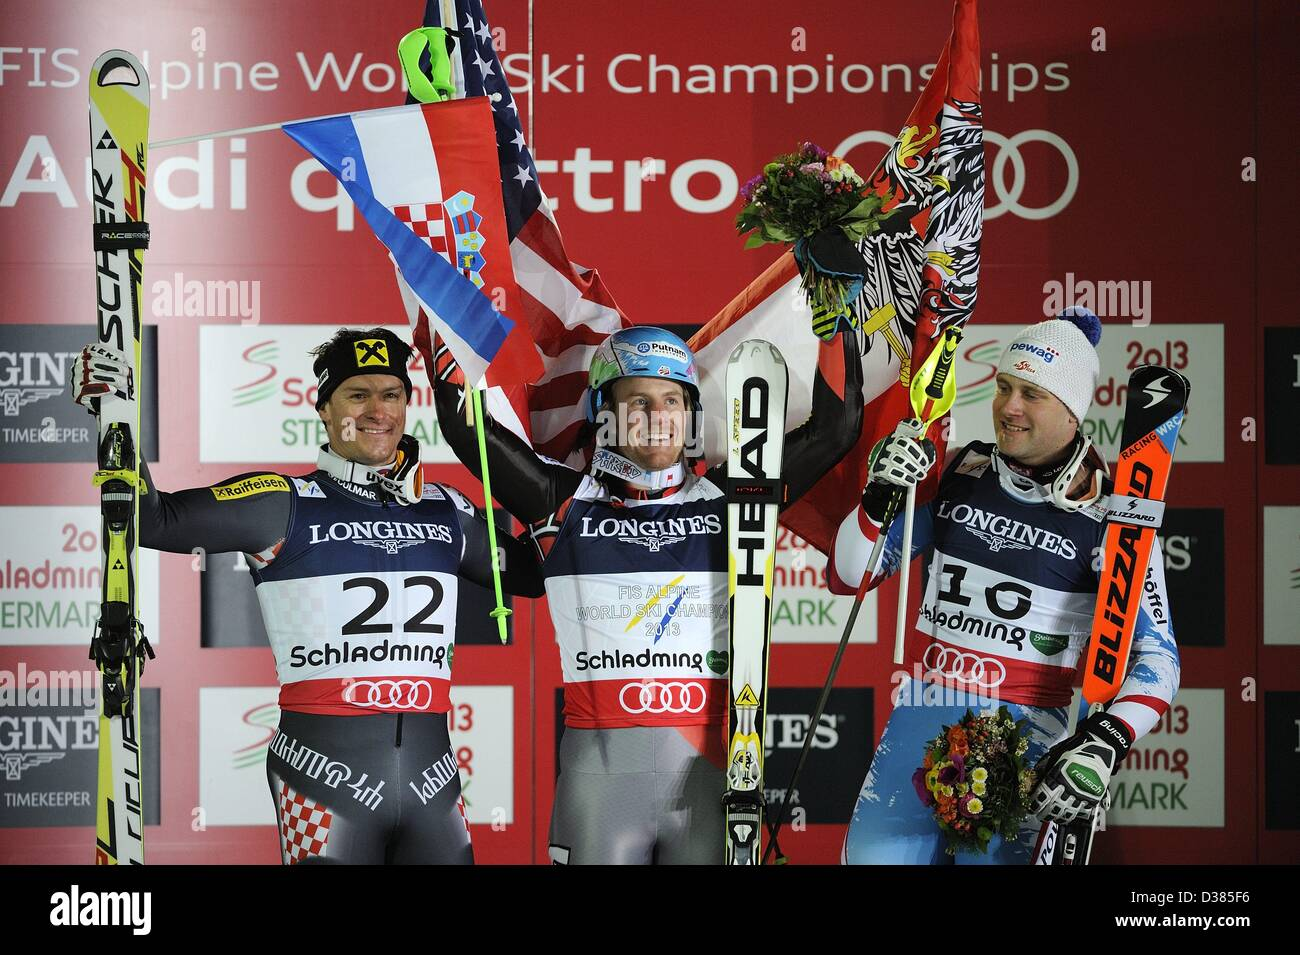 Schladming, Austria. 11th February 2013. (L-R) Ivica Kostelic (CRO), Ted Ligety (USA), Romed Baumann (AUT), FEBRUARY Stock Photo